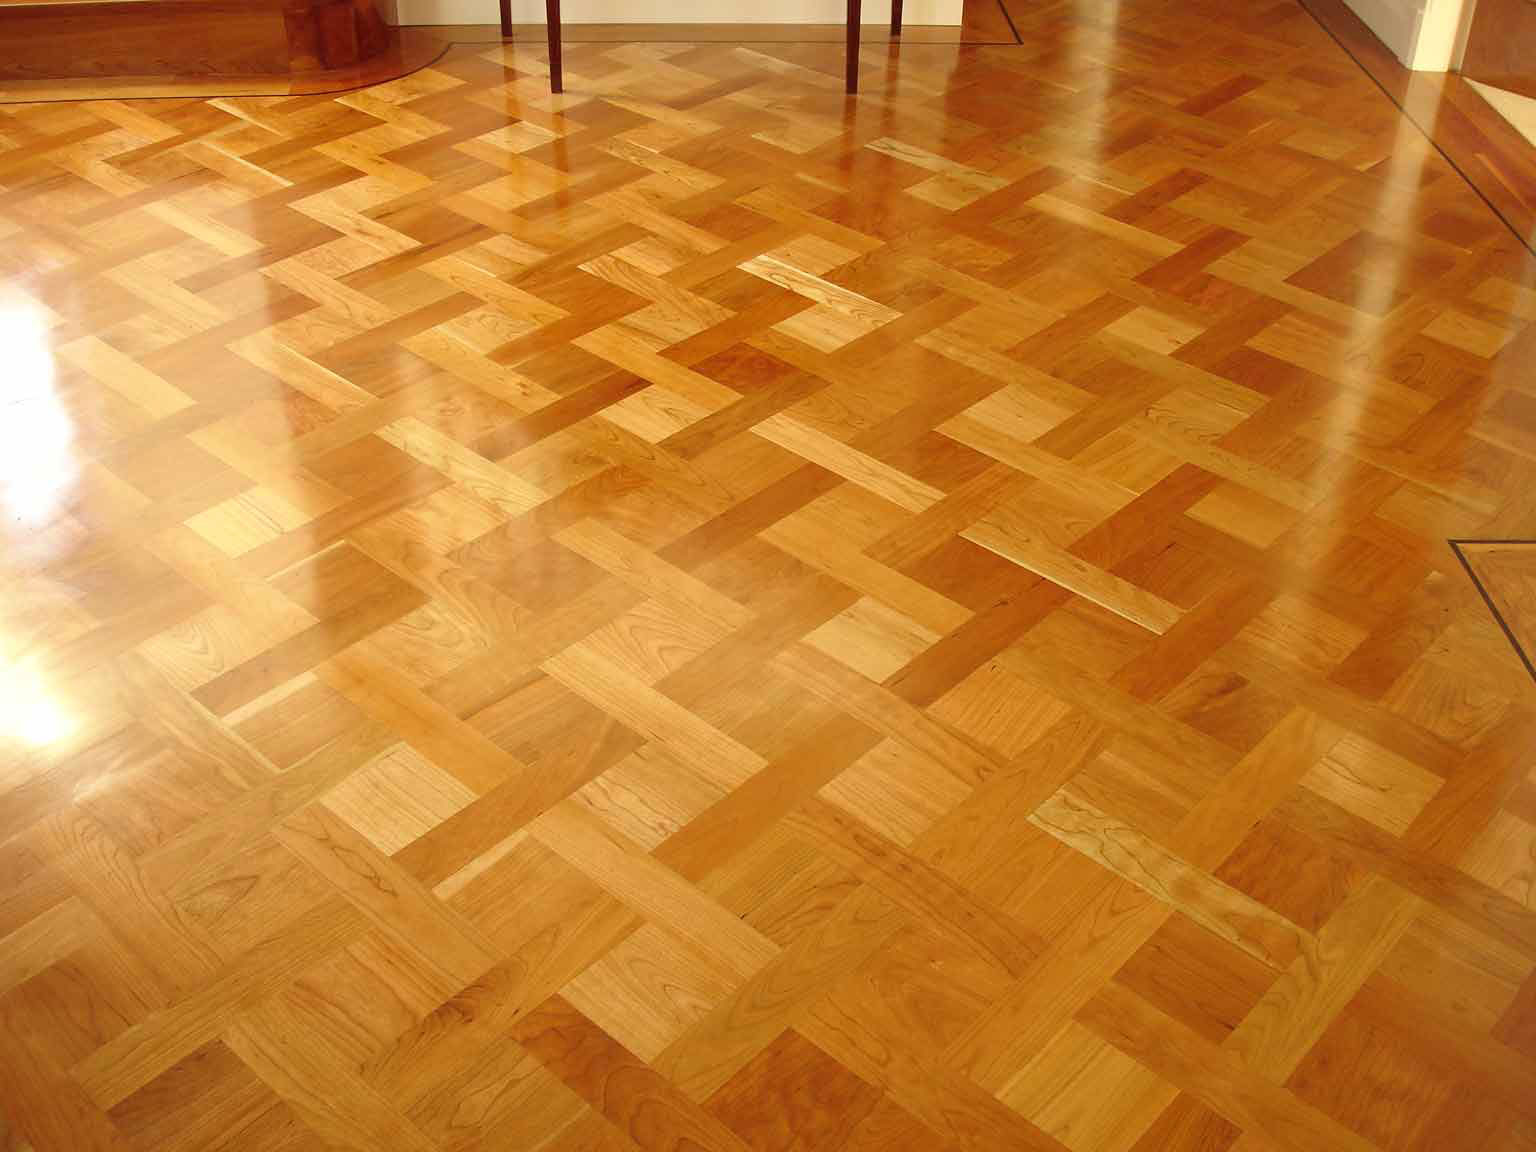 Wood flooring ideas design wood flooring ideas home trendy for Hardwood floor ideas pictures